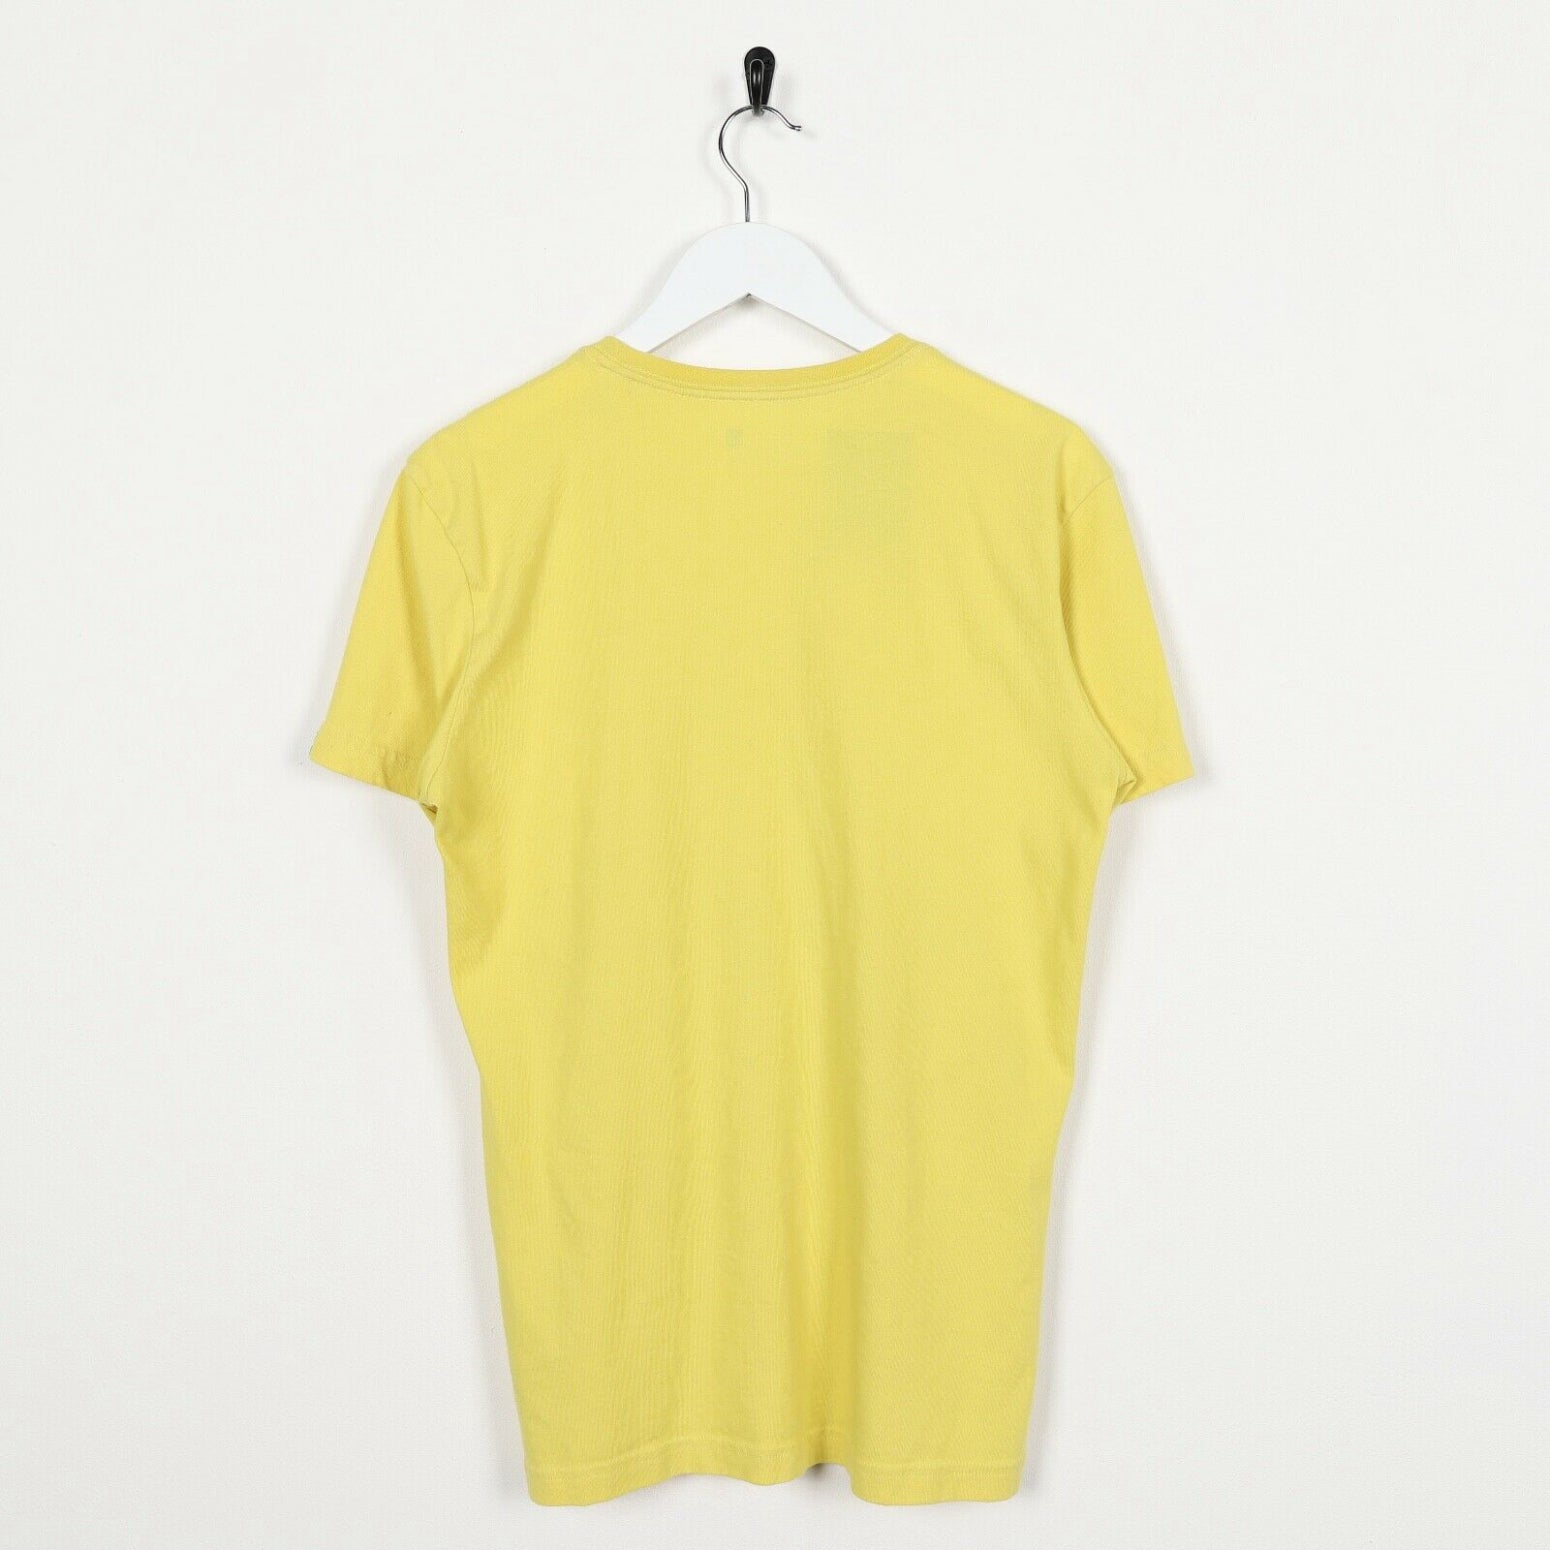 Vintage ADIDAS Big Graphic Logo T Shirt Tee Yellow | Small S